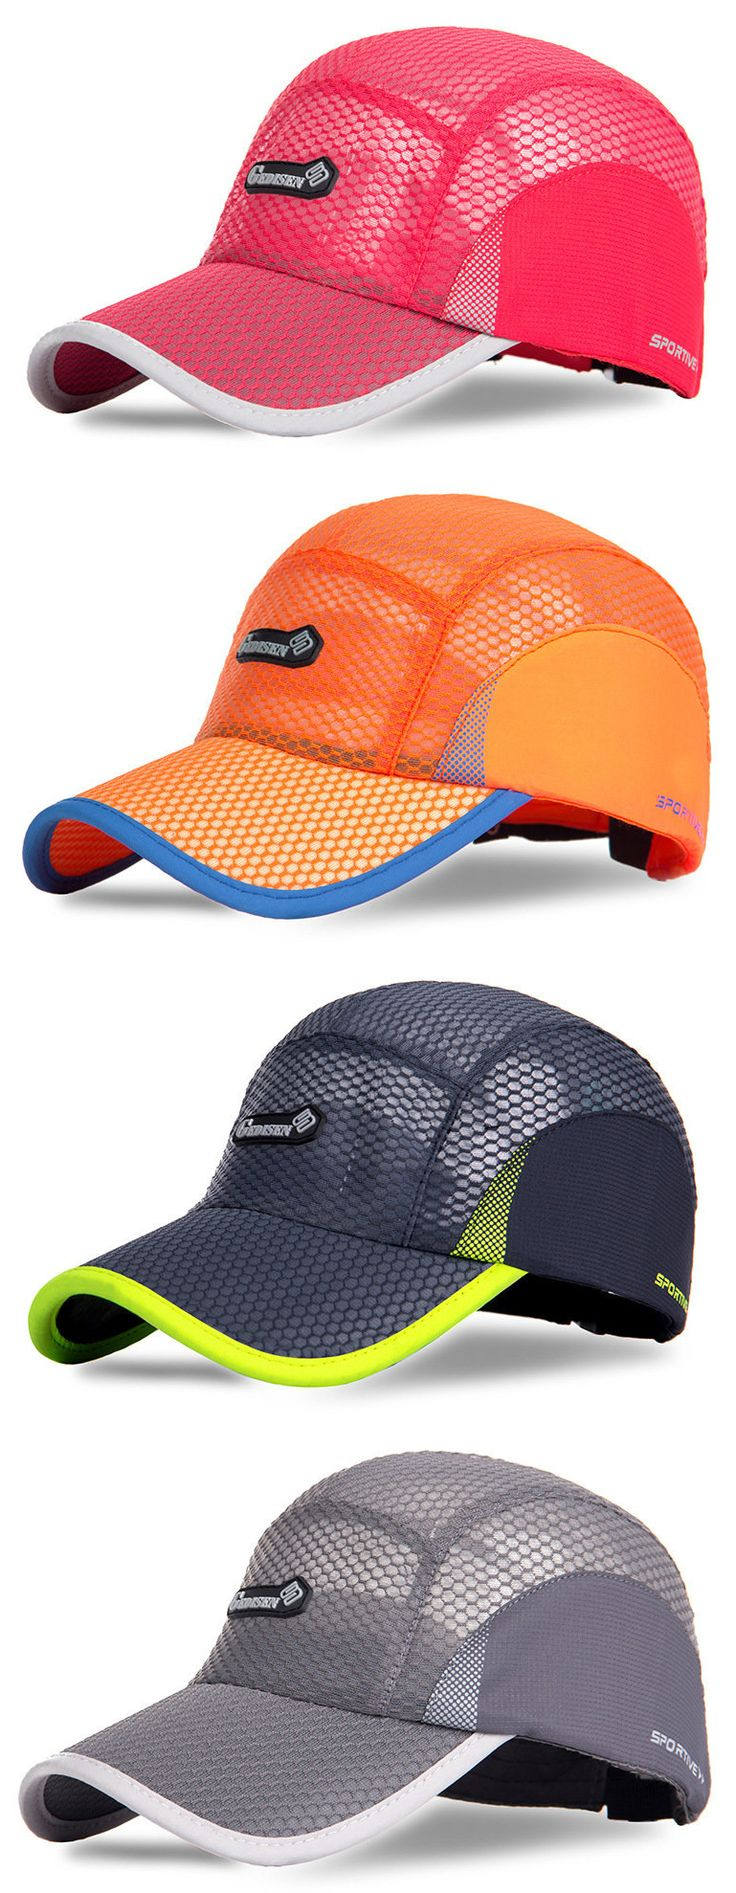 Men Women Summer Breathable Mesh Quick-drying Baseball Hat Outdoor Sport Waterproof Sunshade Cap